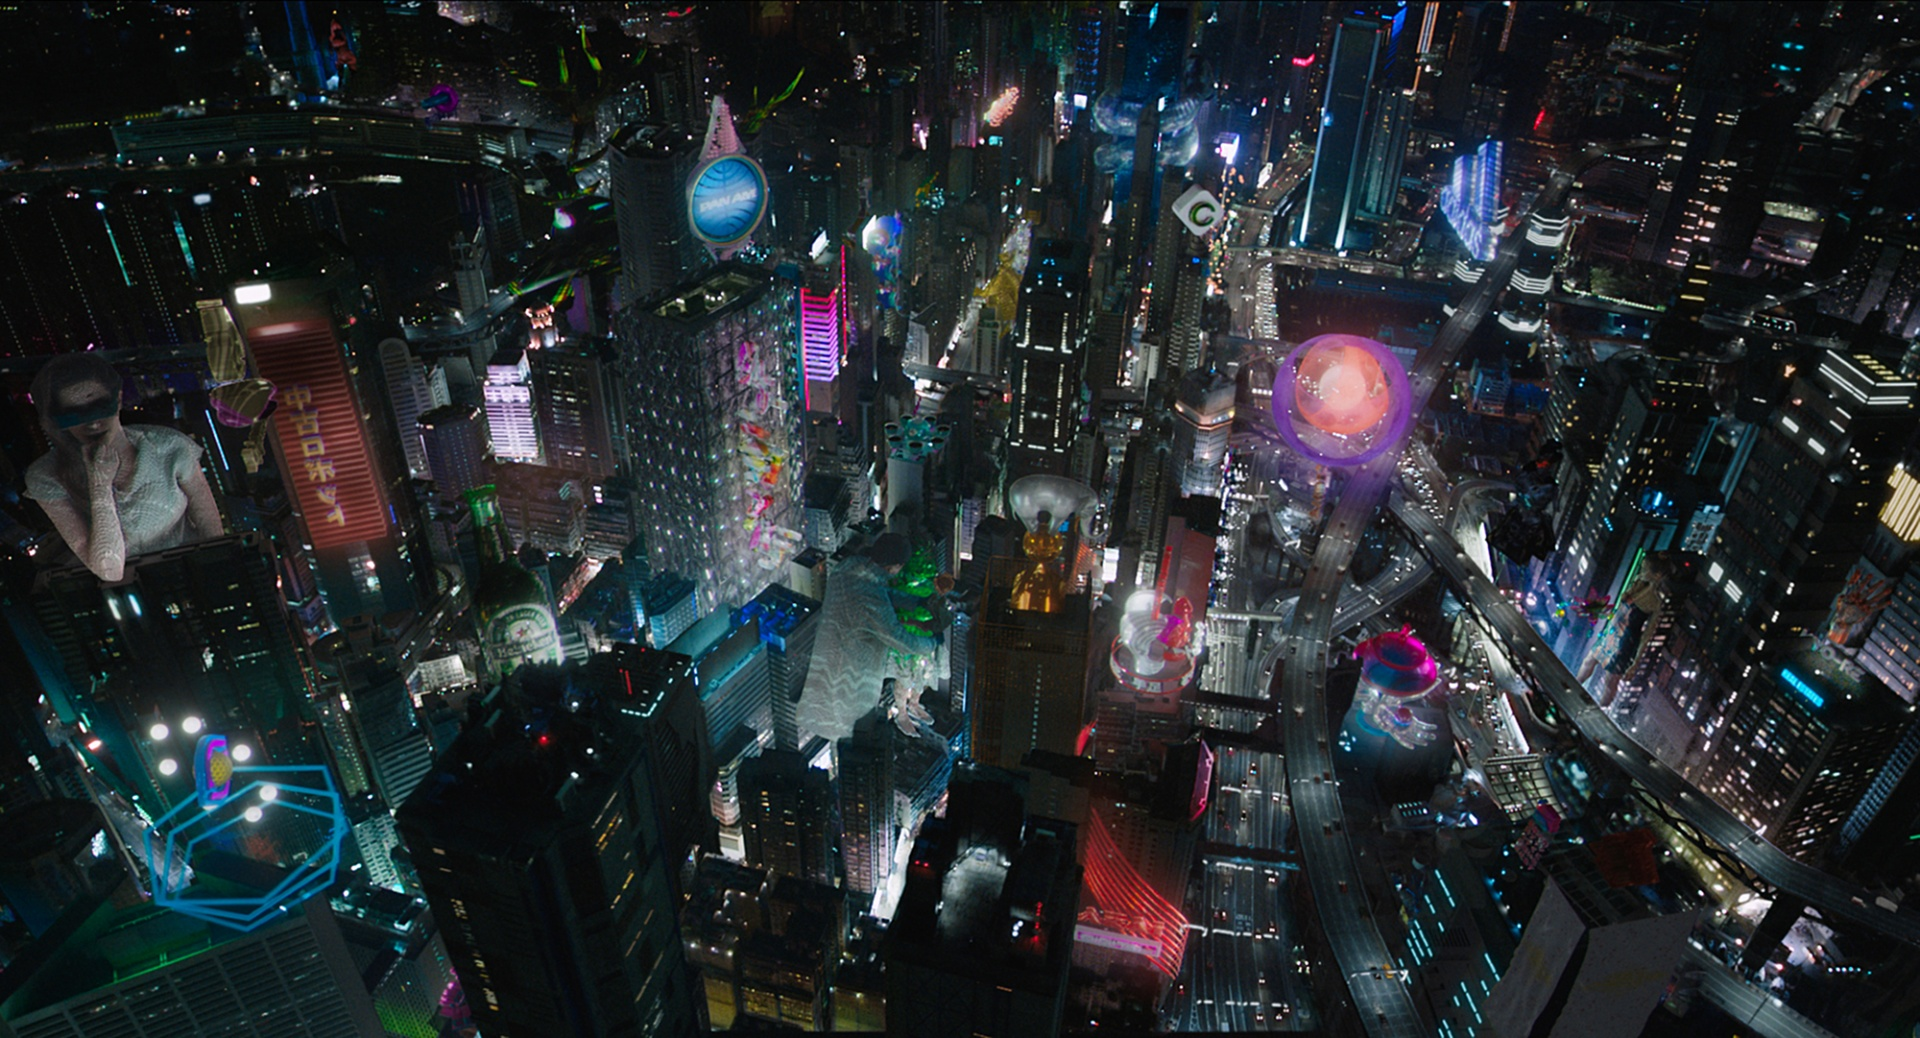 Ghost In The Shell Creating A Hybrid World